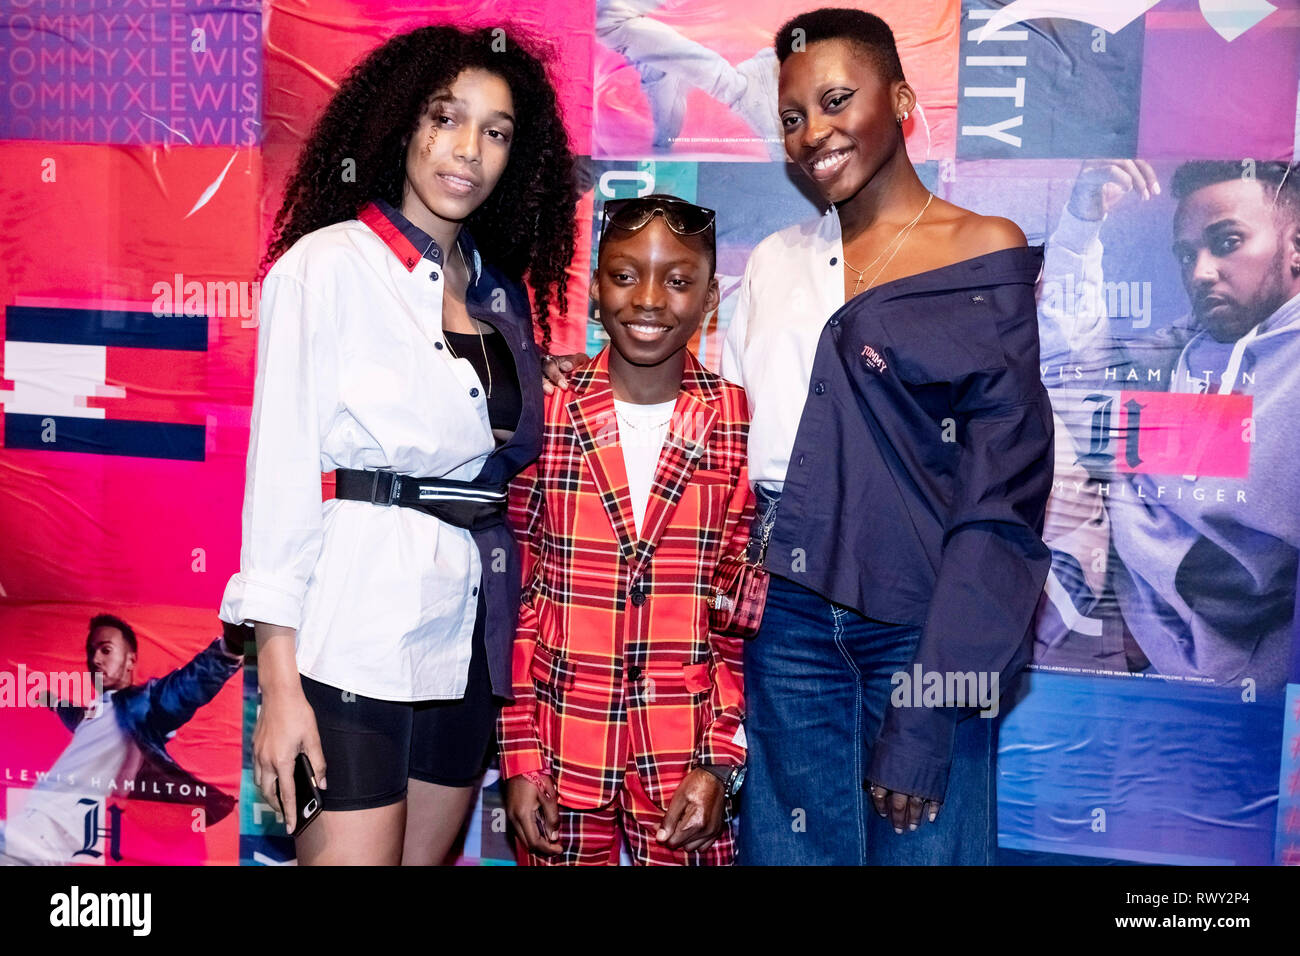 07 March 2019, Berlin: Toni Dreher-Adenuga (r), model, stands with her brother (M) and another person at the Tommy Hilfiger CREATExUNITY event in front of a photo wall. Photo: Christoph Soeder/dpa - Stock Image